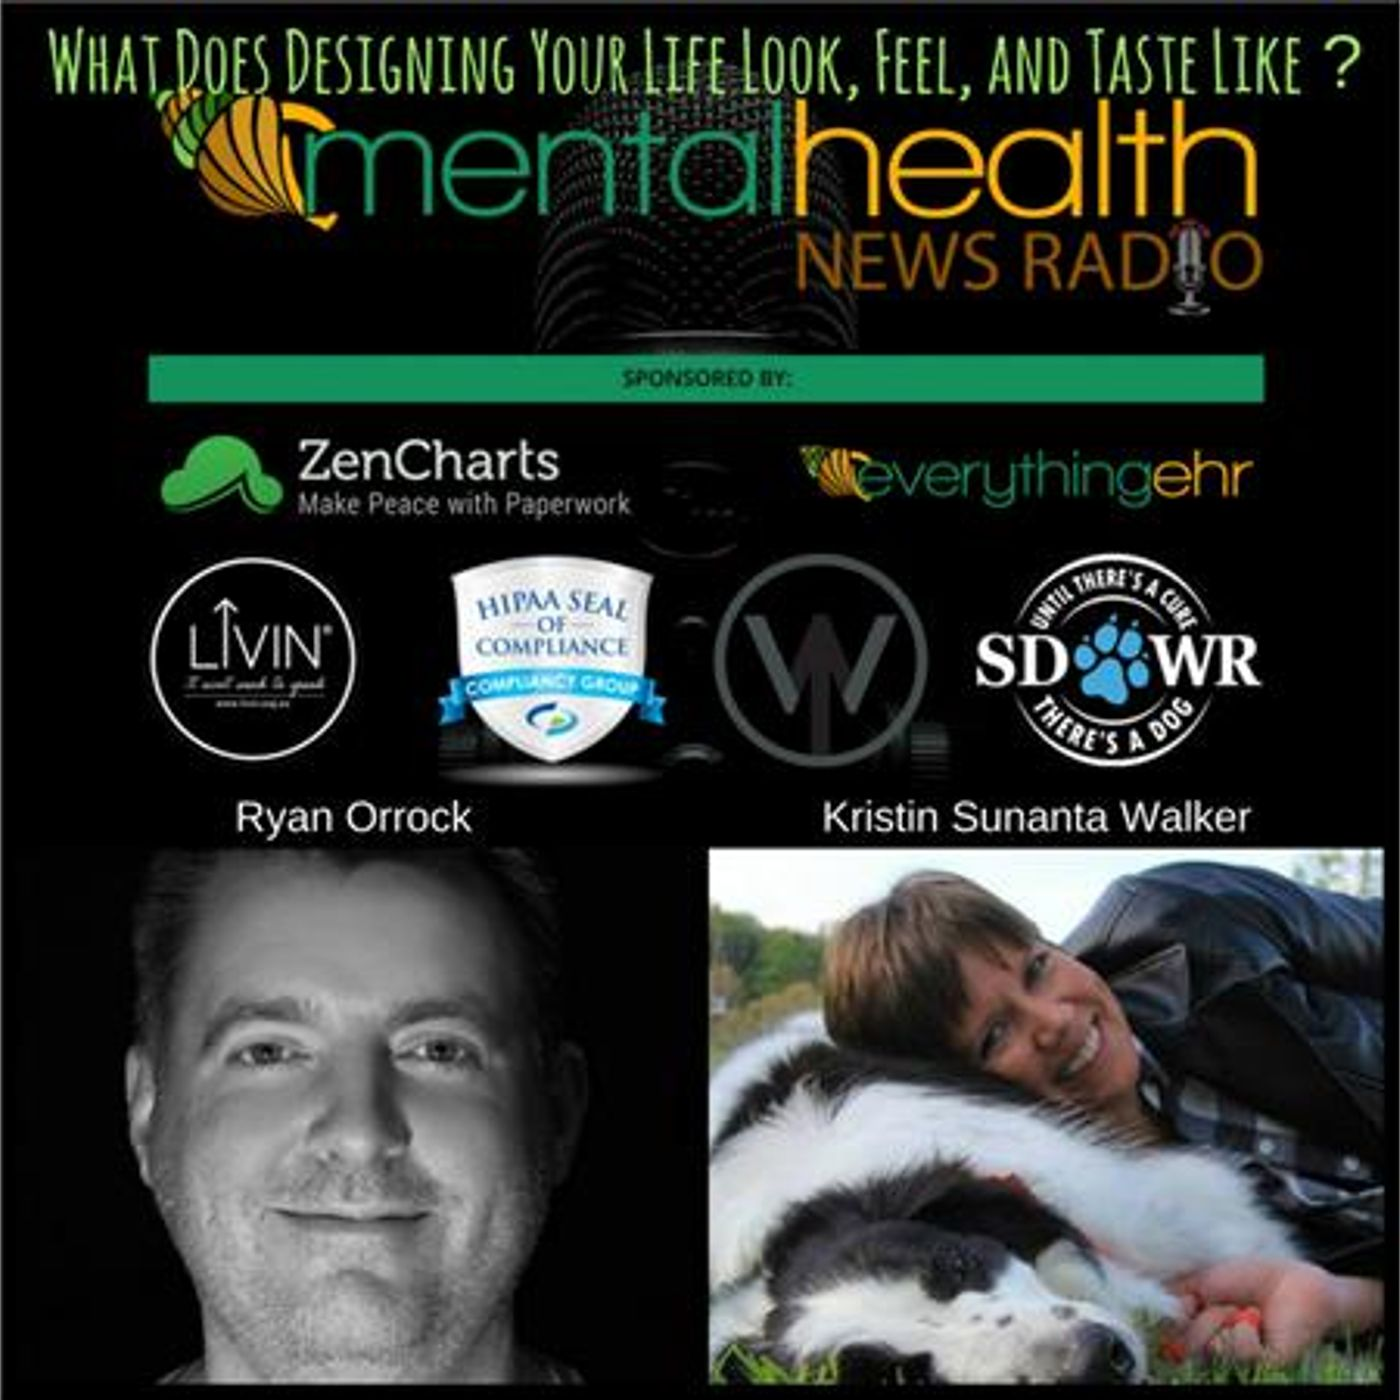 Mental Health News Radio - What Does Designing Your Life Look, Feel, and Taste Like with Ryan Orrock